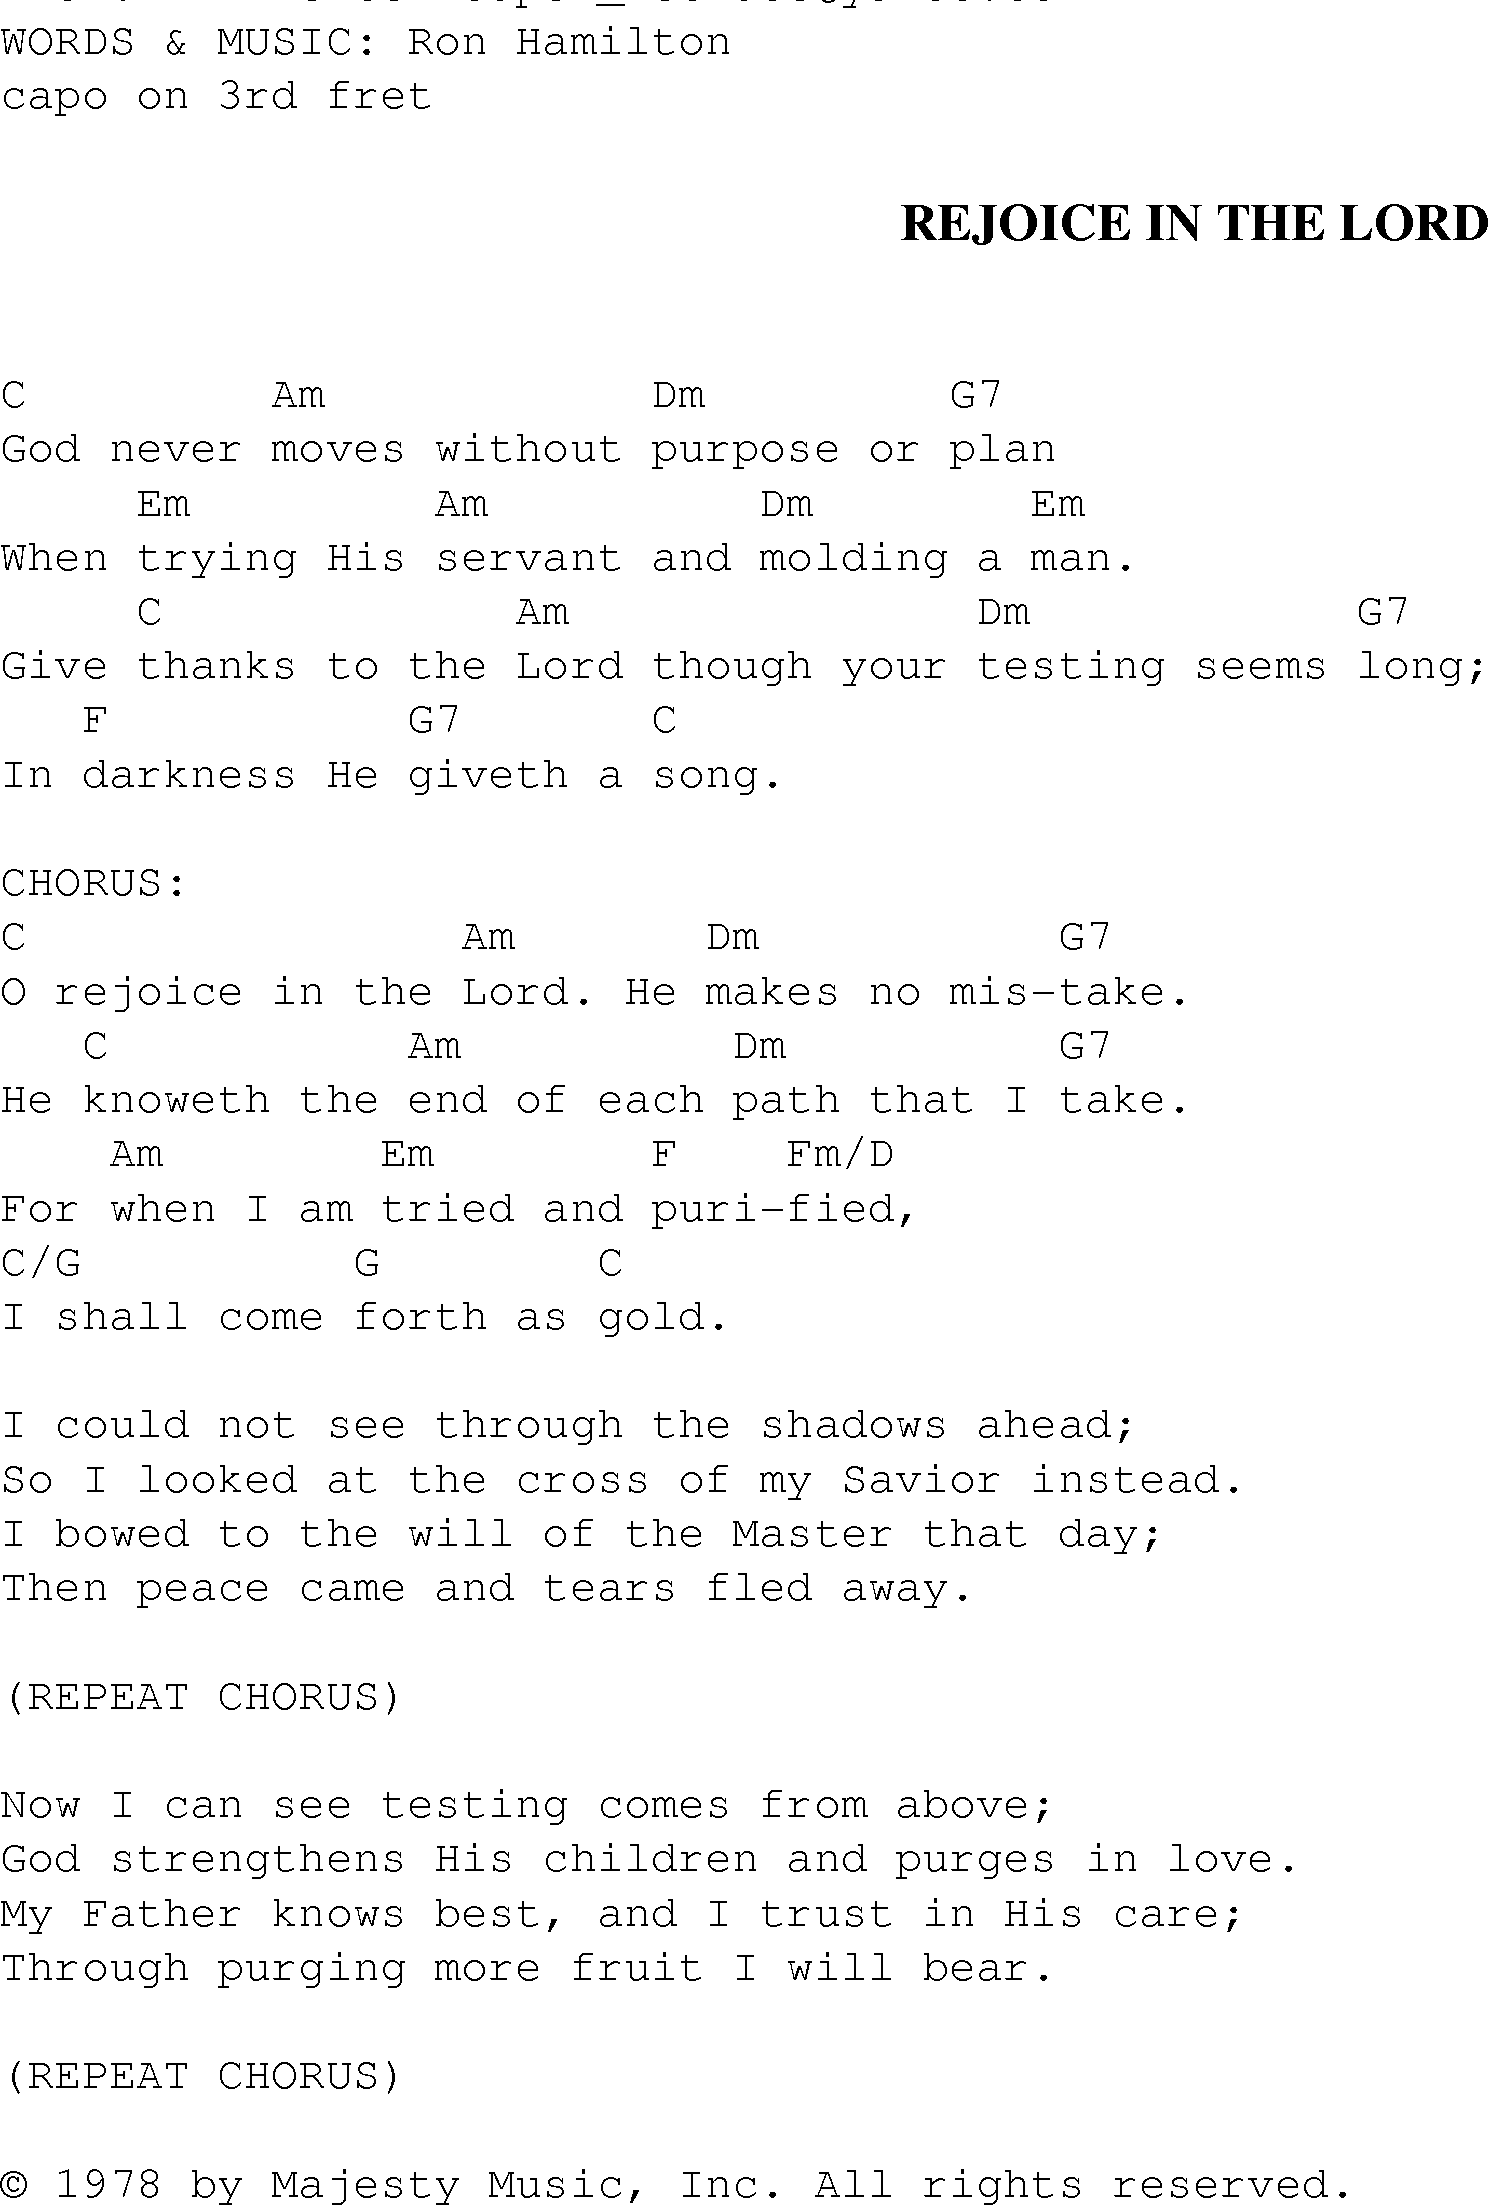 Rejoice In The Lord Christian Gospel Song Lyrics And Chords